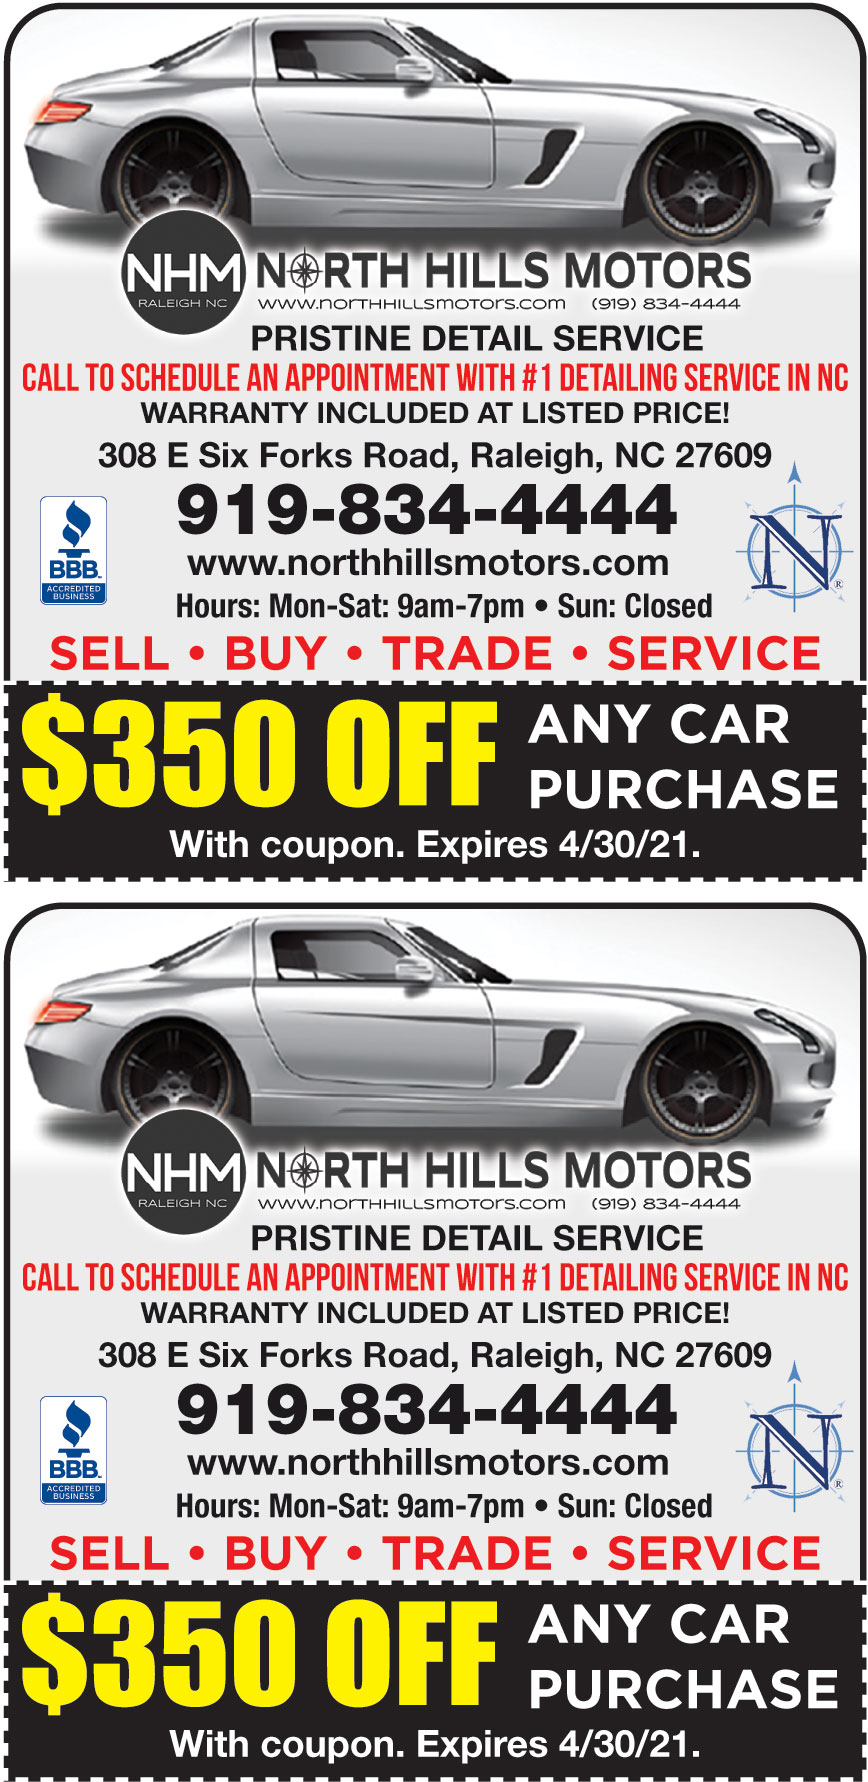 NORTH HILLS MOTORS